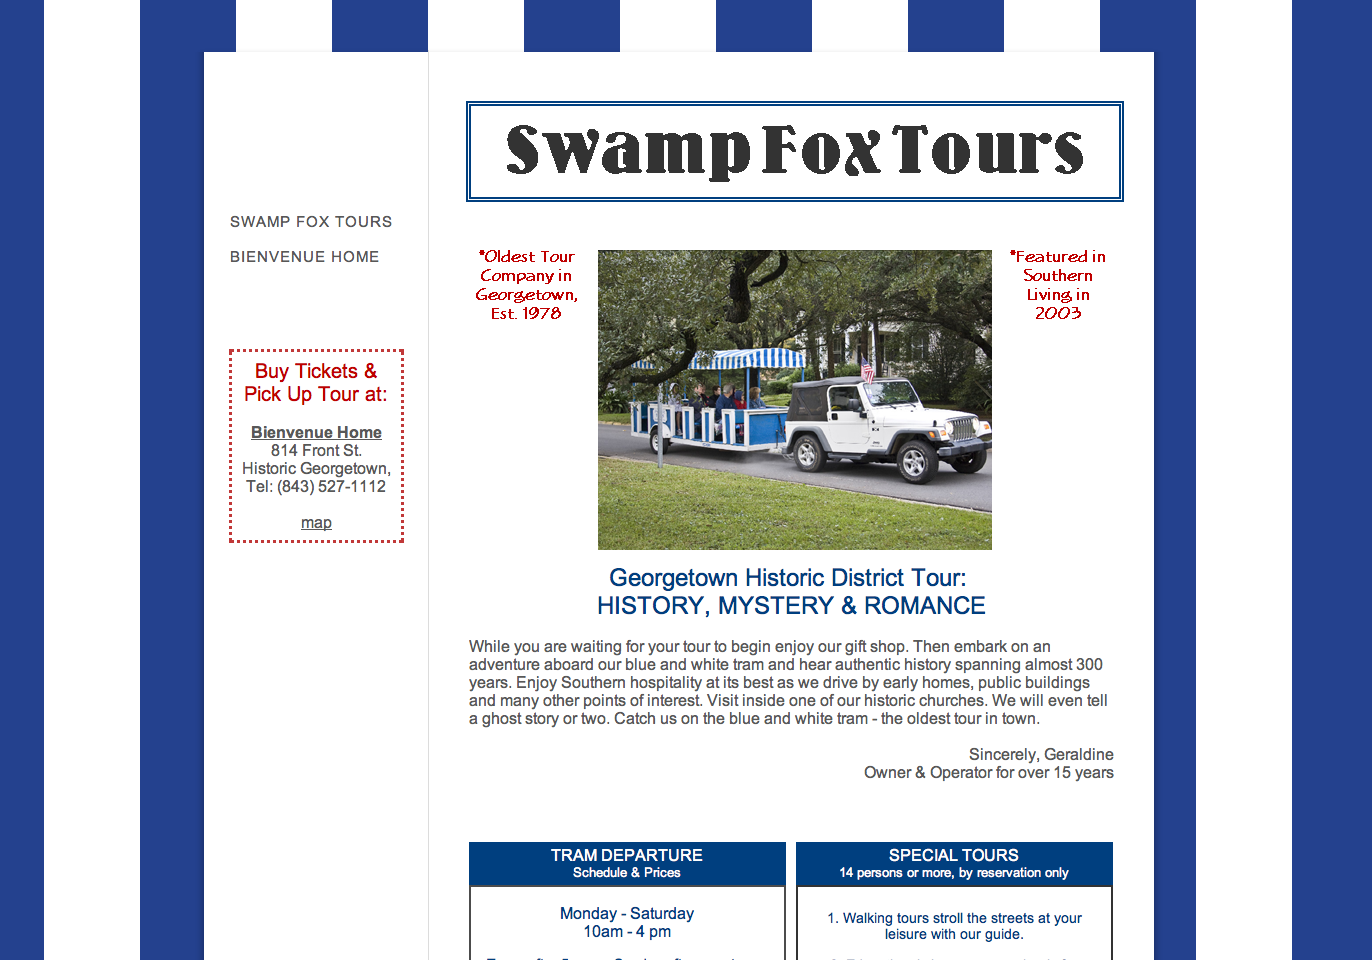 Swamp Fox Tours